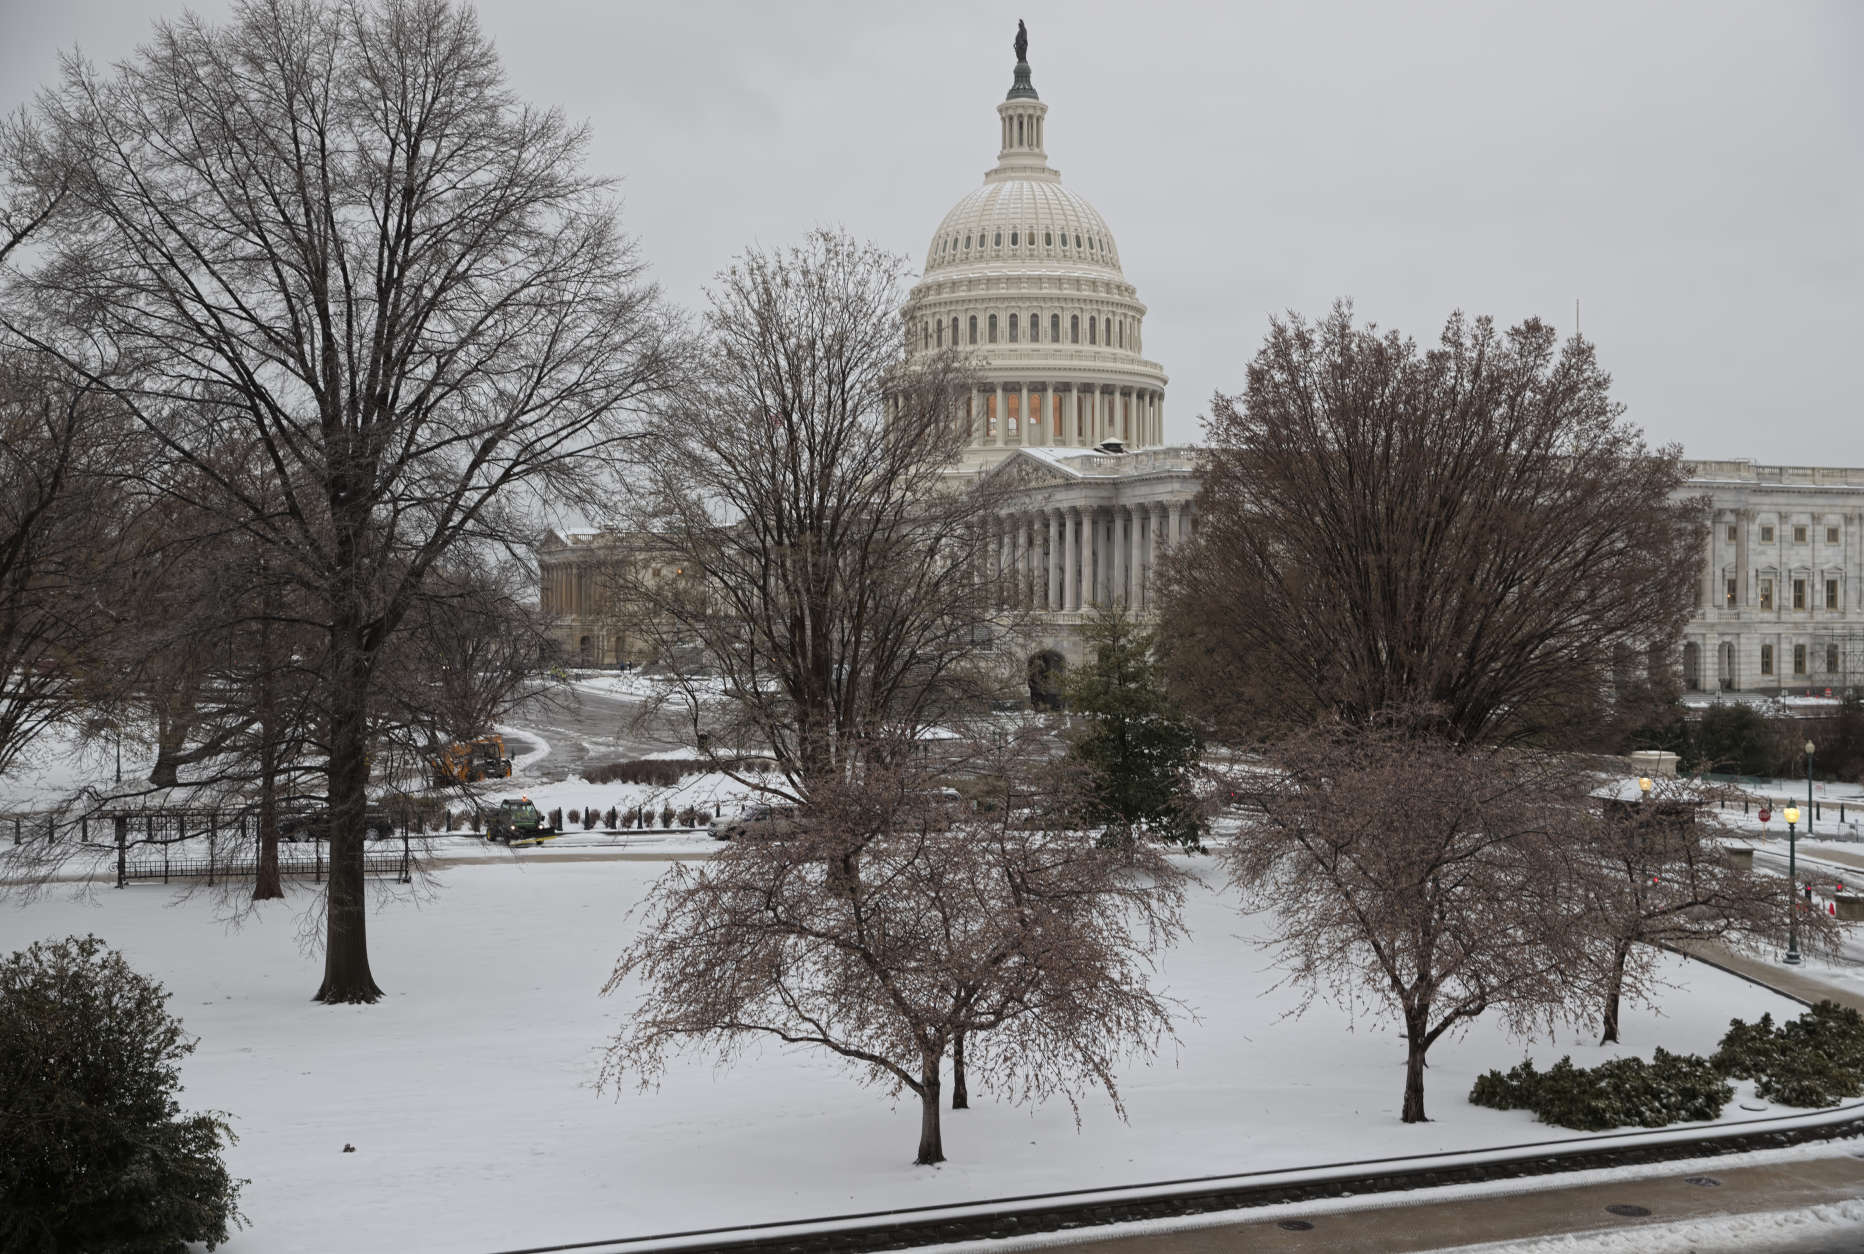 Snow covers Capitol Hill in Washington, early Tuesday, March, 14, 2017. A late-season storm is dumping a messy mix of snow, sleet and rain on the mid-Atlantic, complicating travel, knocking out power and closing schools and government offices around the region. (AP Photo/J. Scott Applewhite)